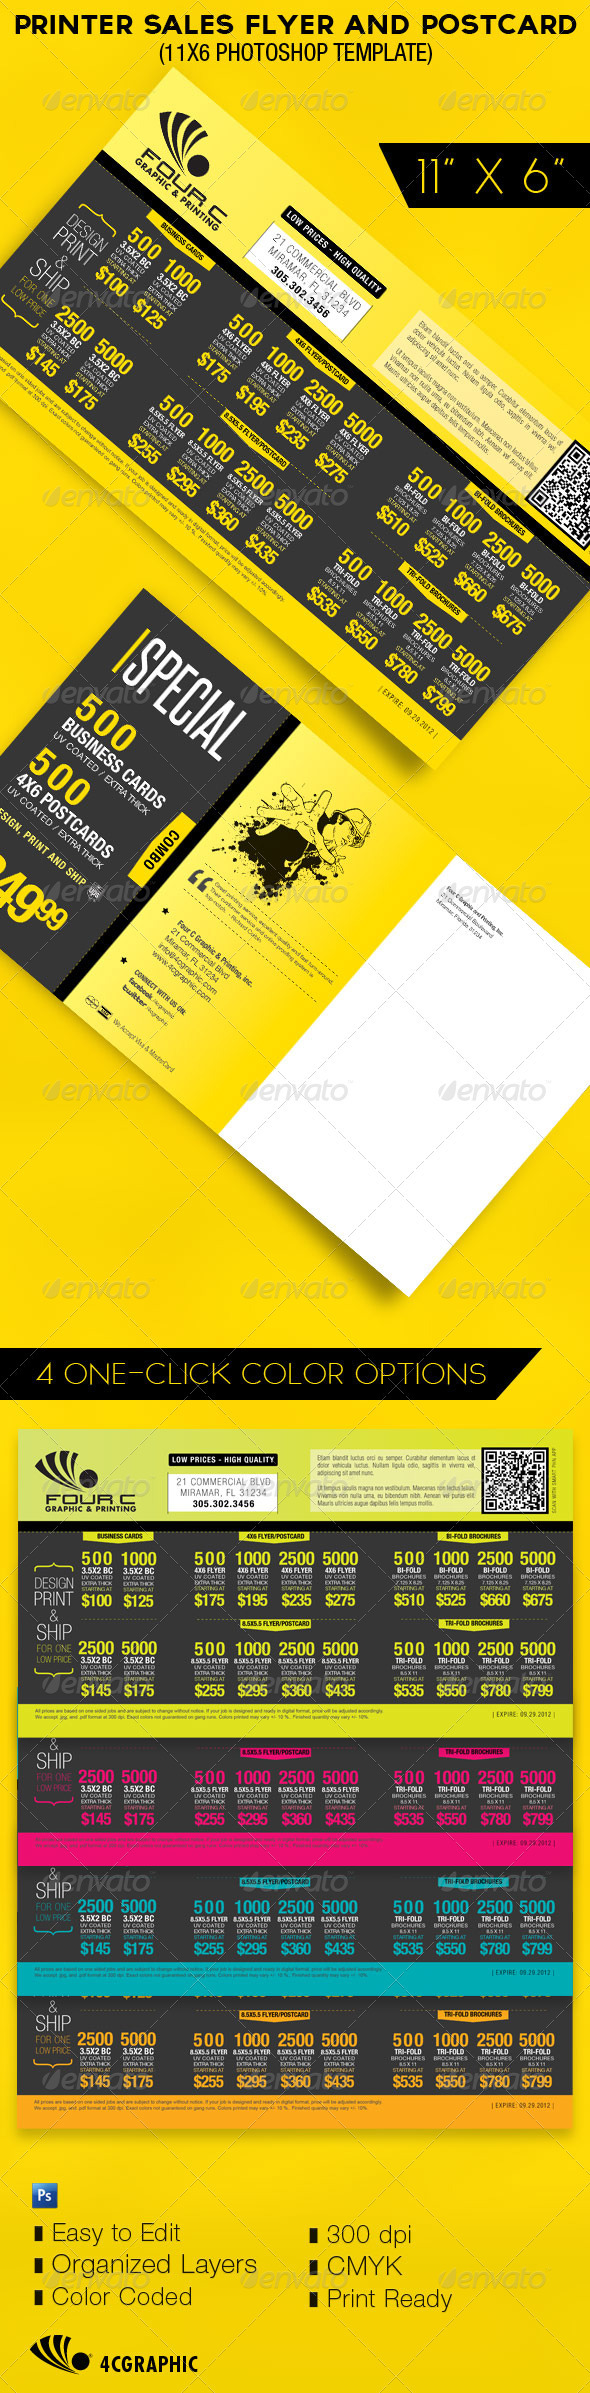 Printer Flyer Postcard Template - Commerce Flyers